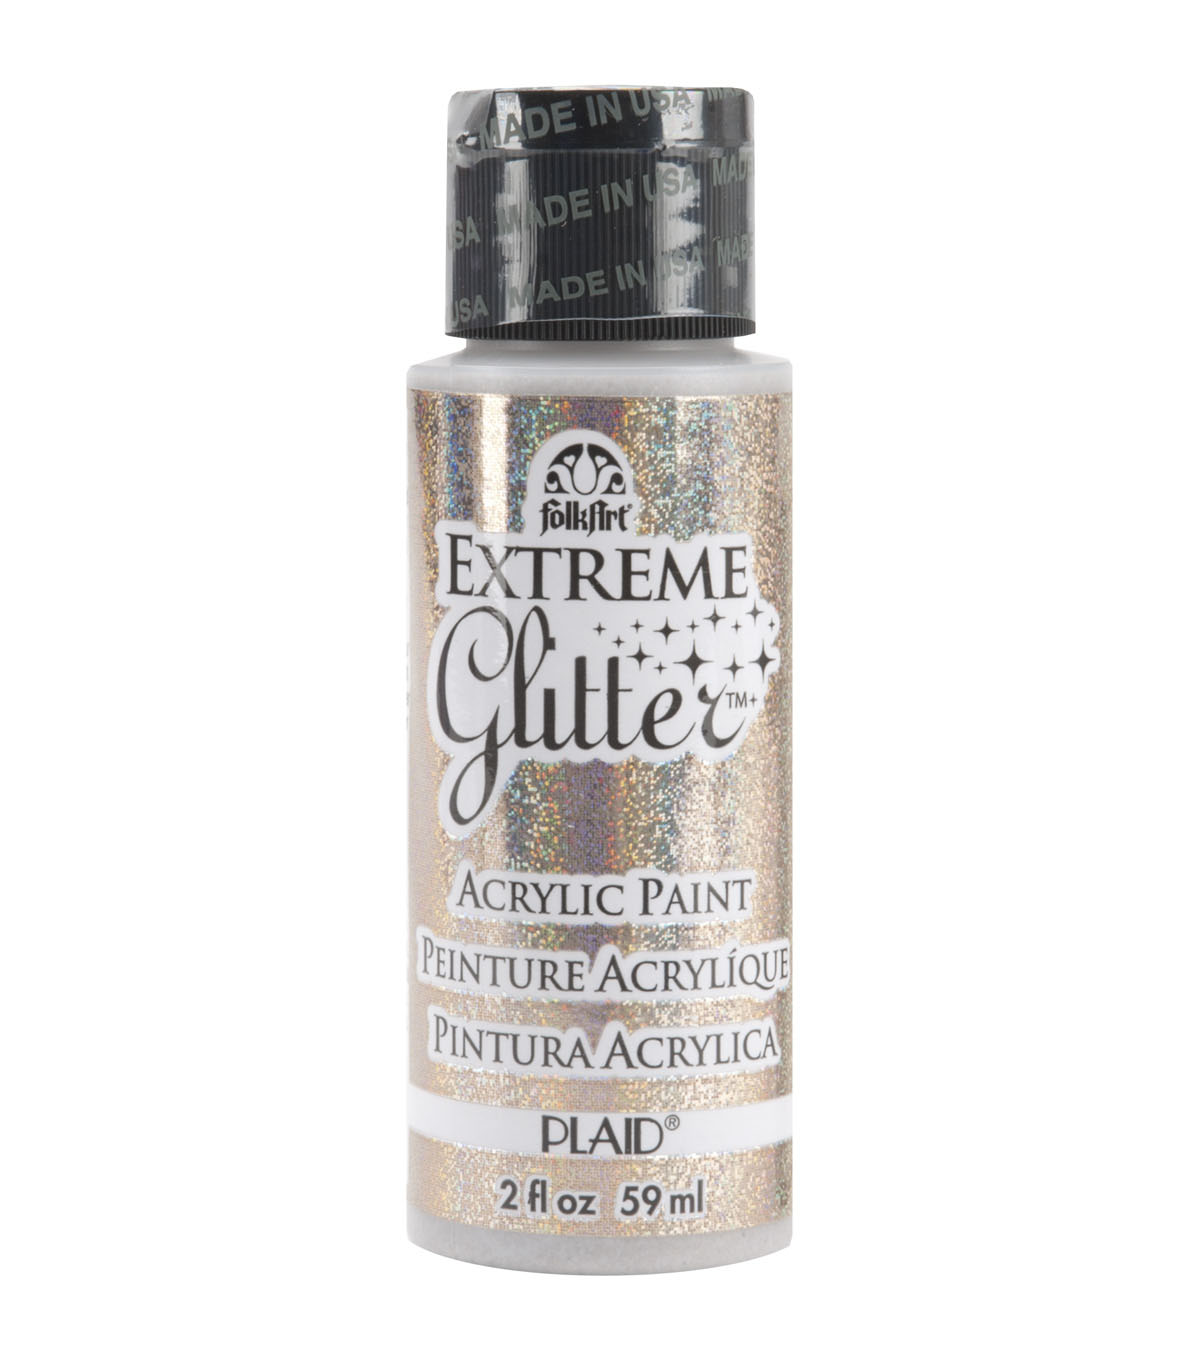 Plaid Folk Art Extreme Glitter Paint 2 Ounces